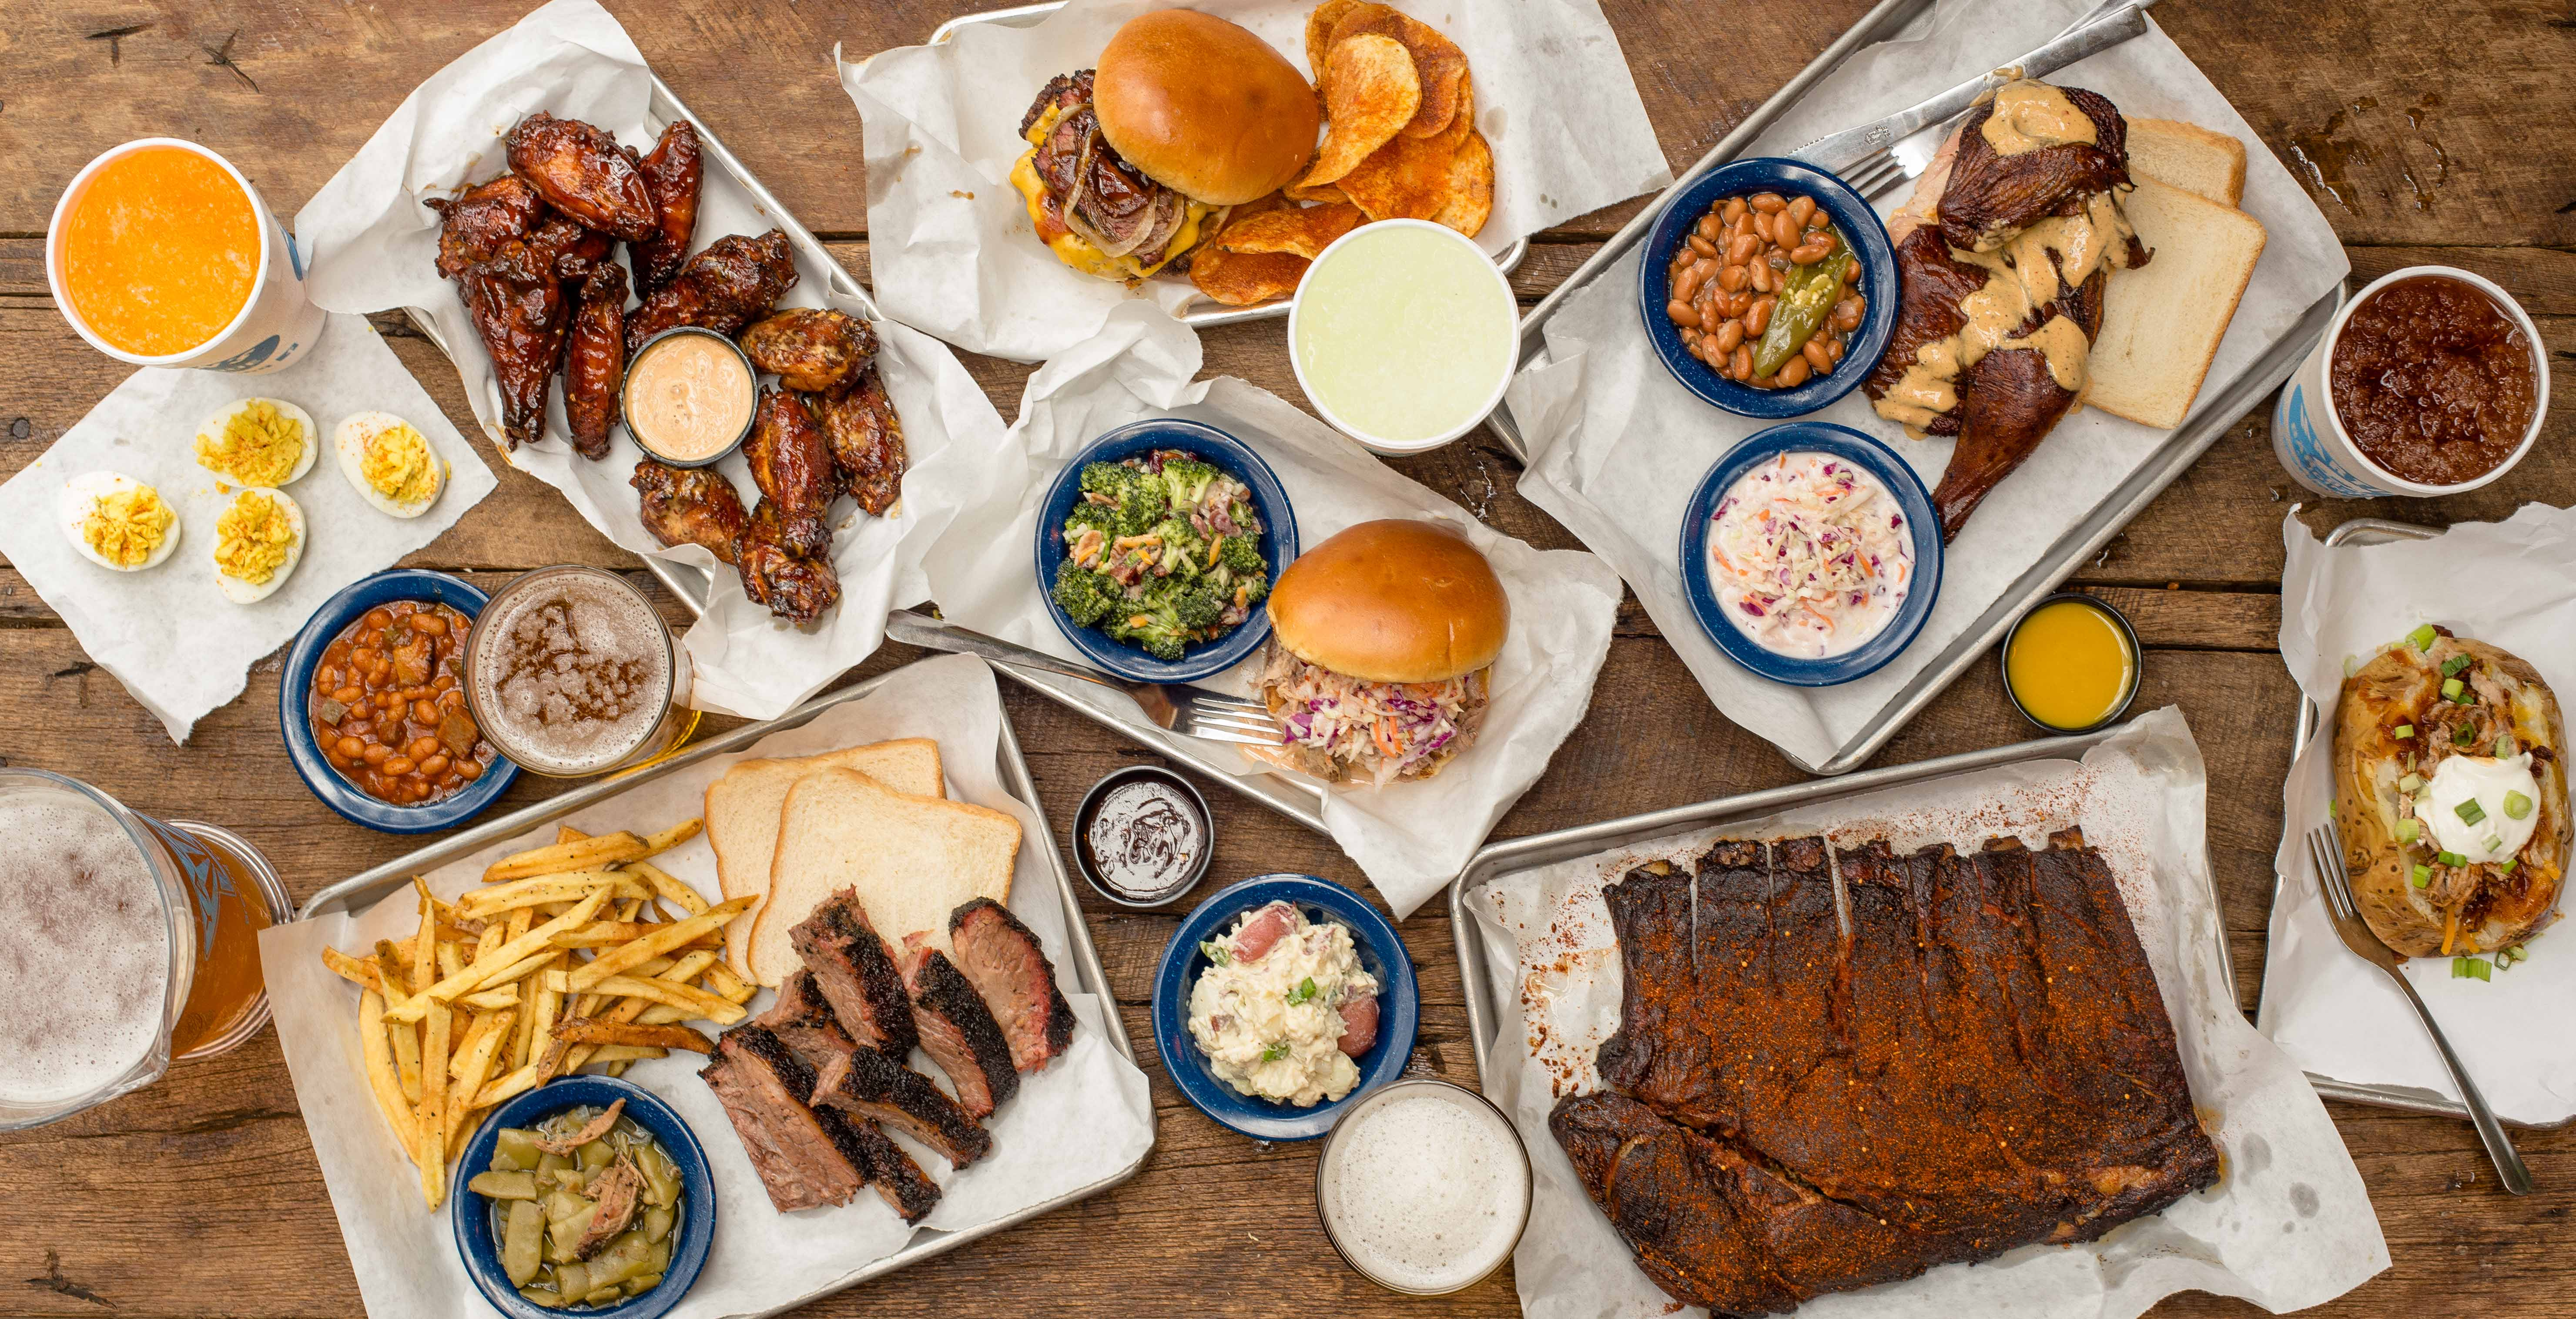 Martin's Bar-B-Que Brings All of the Meats to Midtown Soon